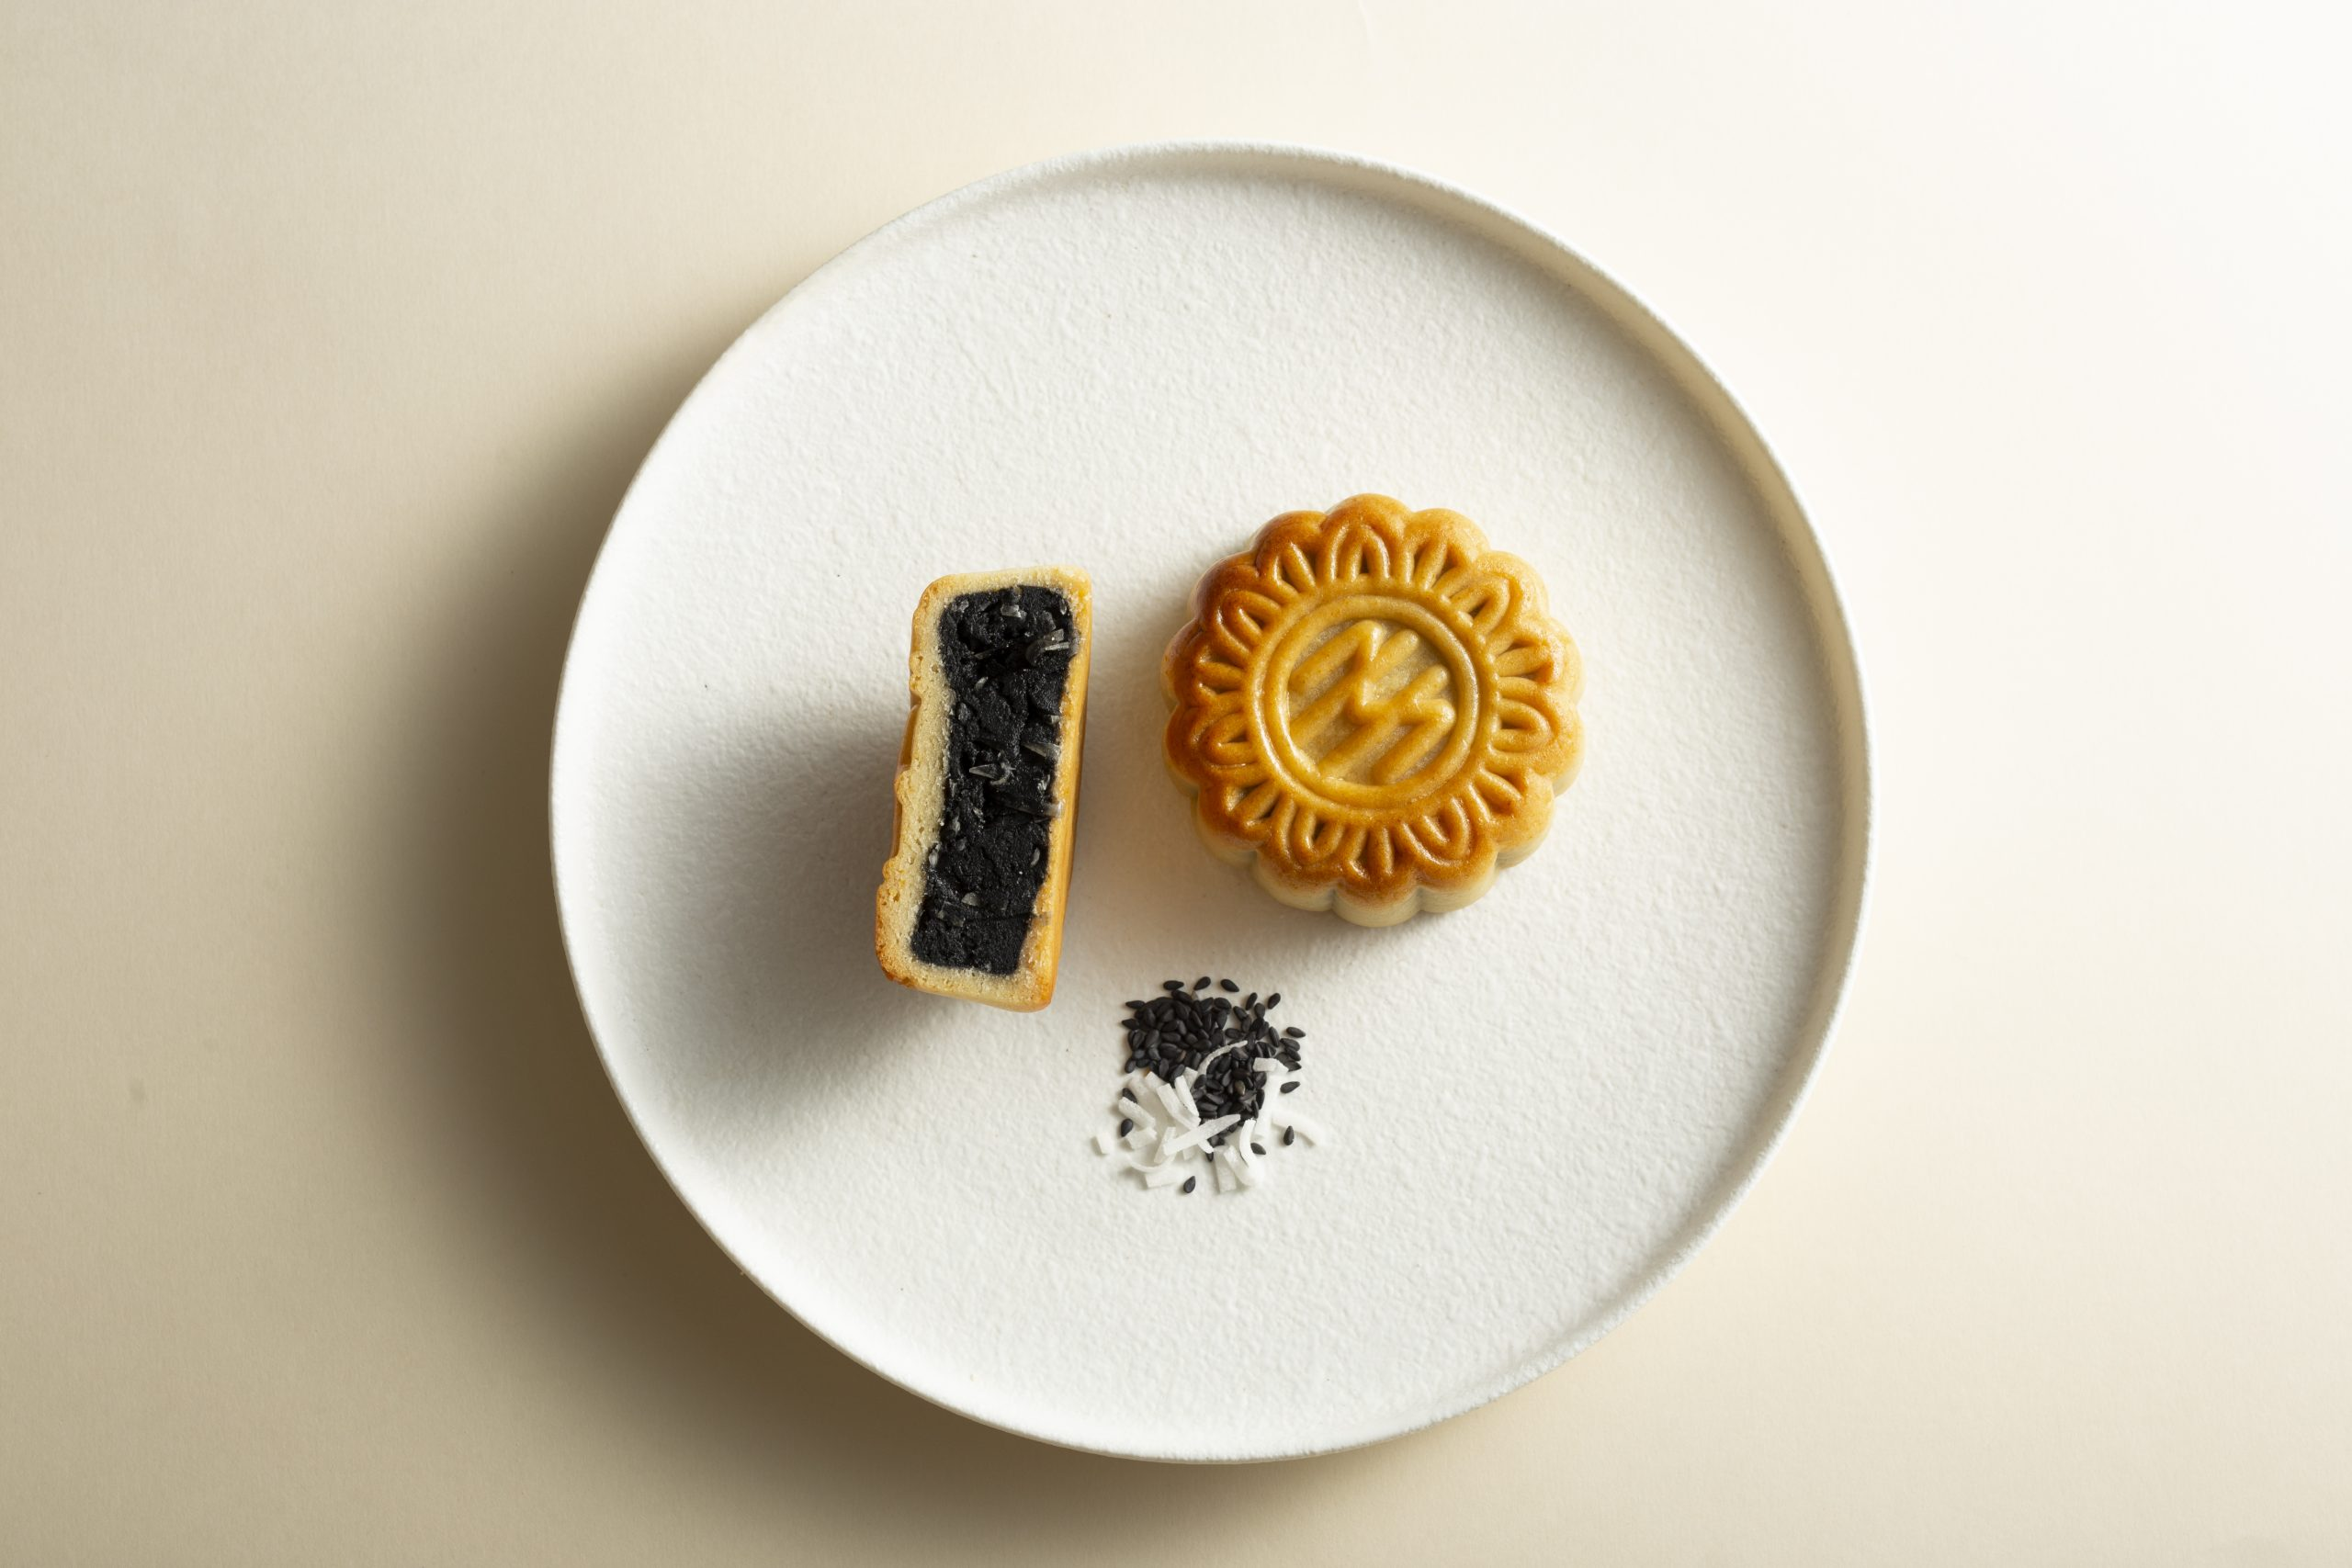 metropole-hanoi-unveils-new-mooncake-flavors-elegant-boxes-for-mid-autumn-festival